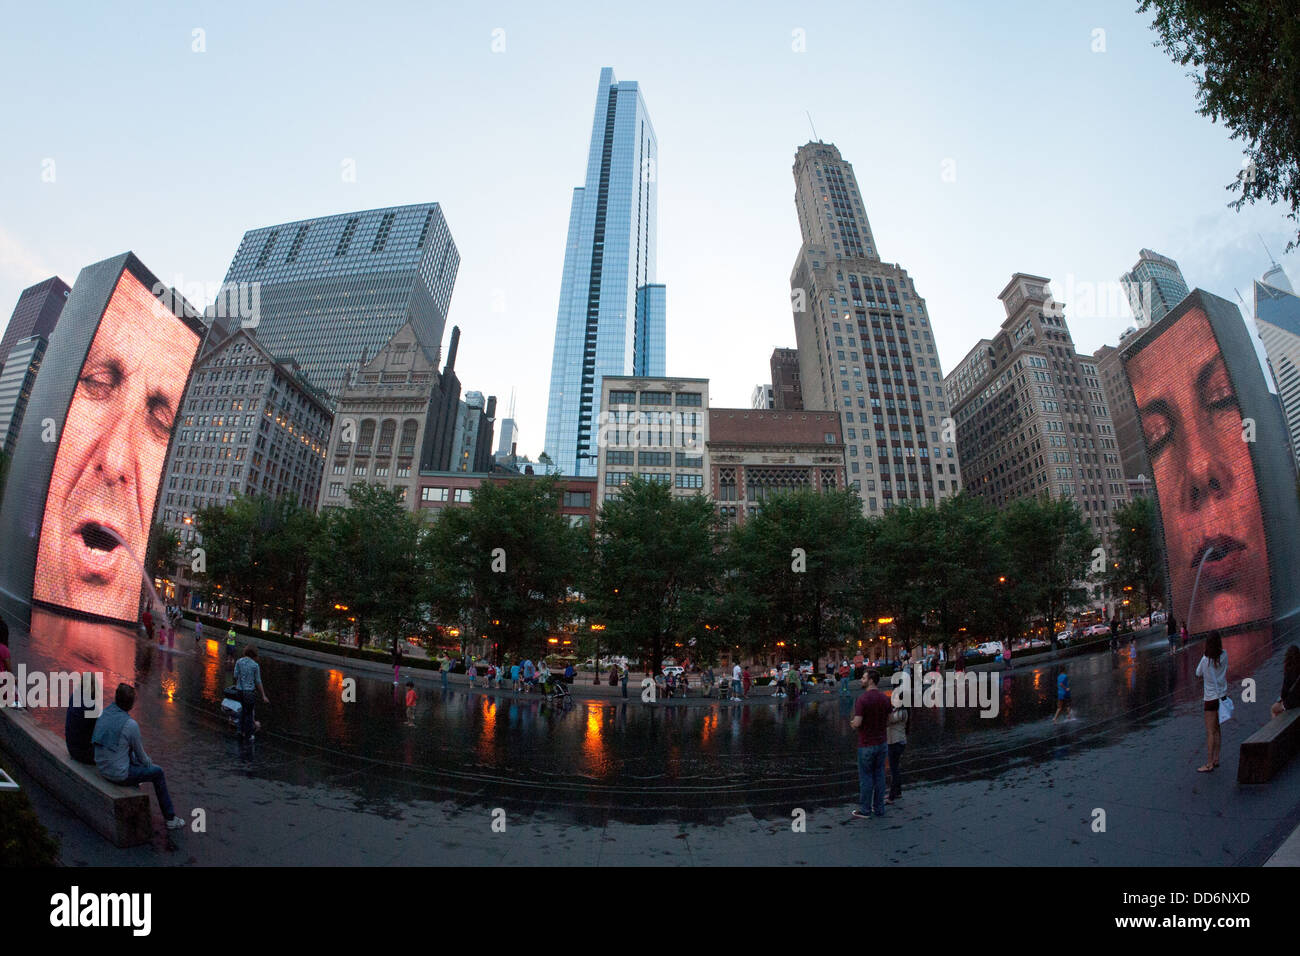 A fisheye image of the Crown Fountain (in Millennium Park), Chicago's beloved public work of video art, at dusk. - Stock Image